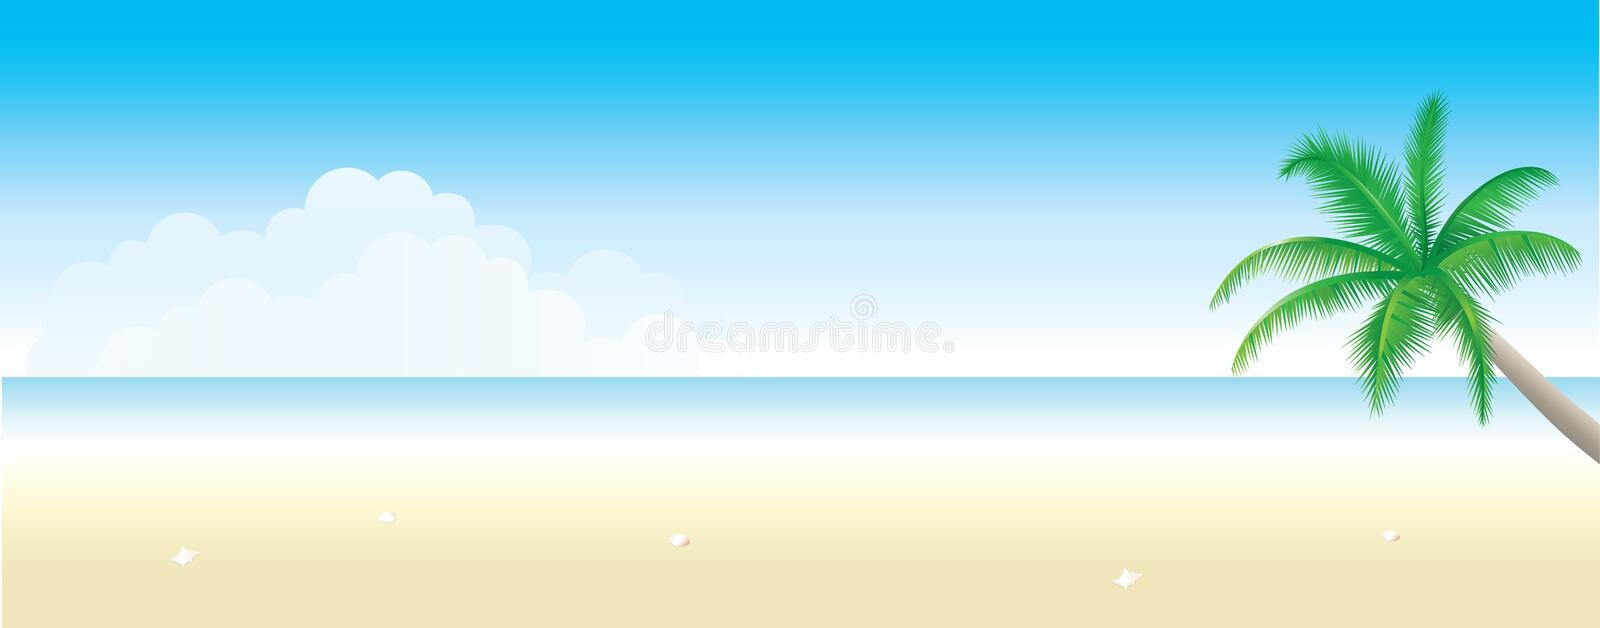 Beach Background royalty free illustration